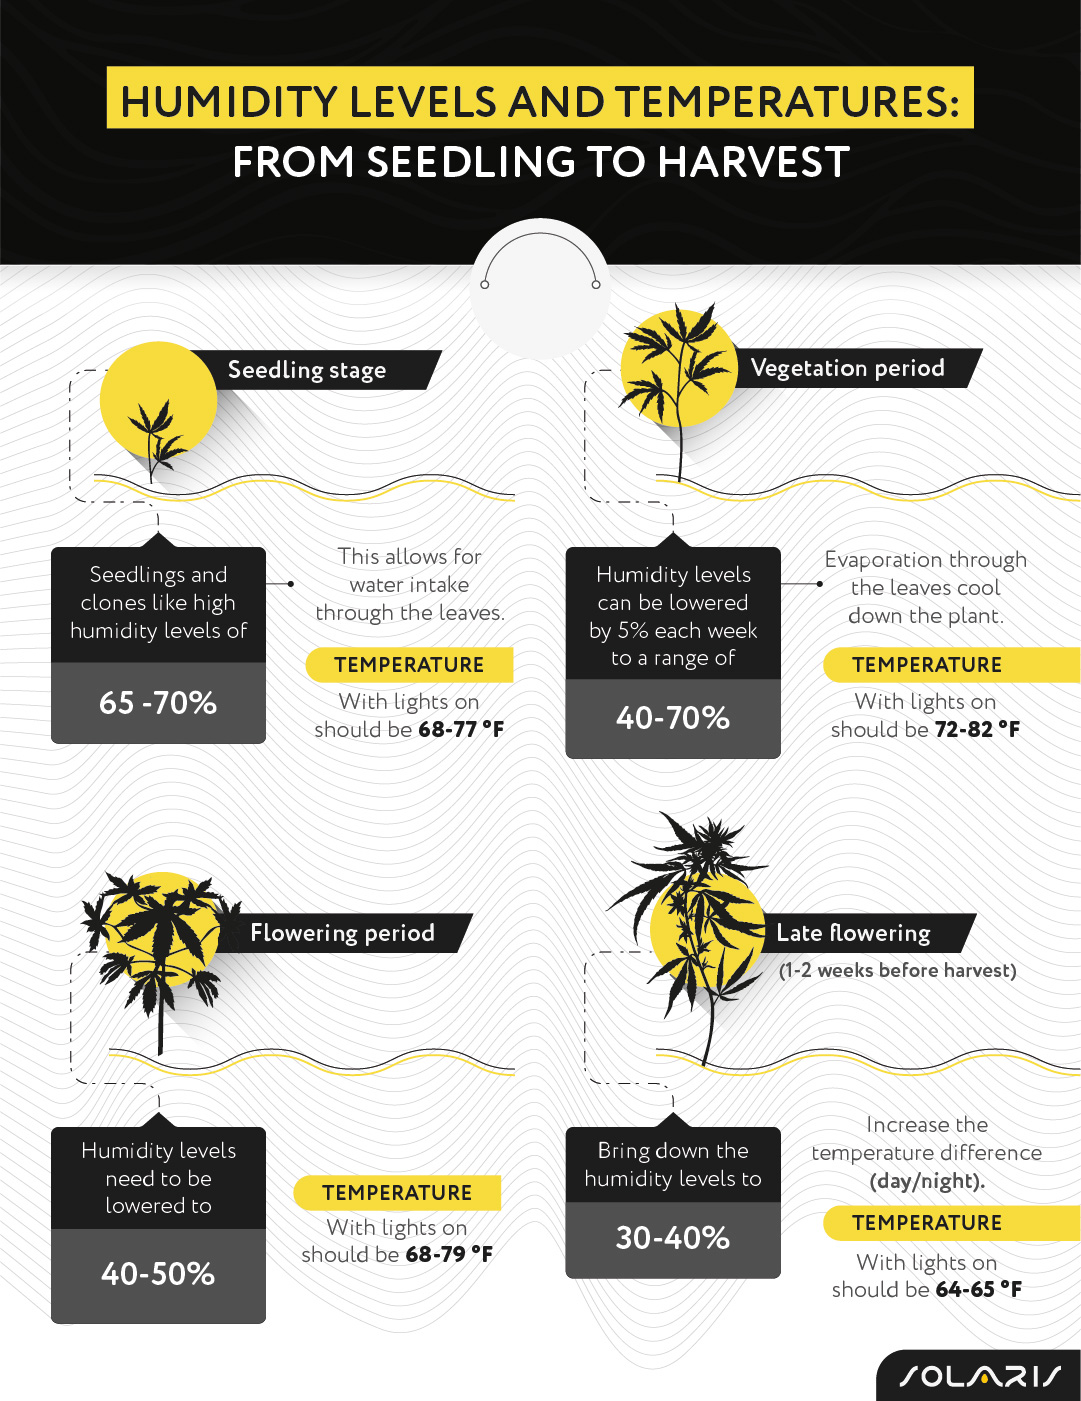 Humidity levels and temperatures: from seedling to harvest